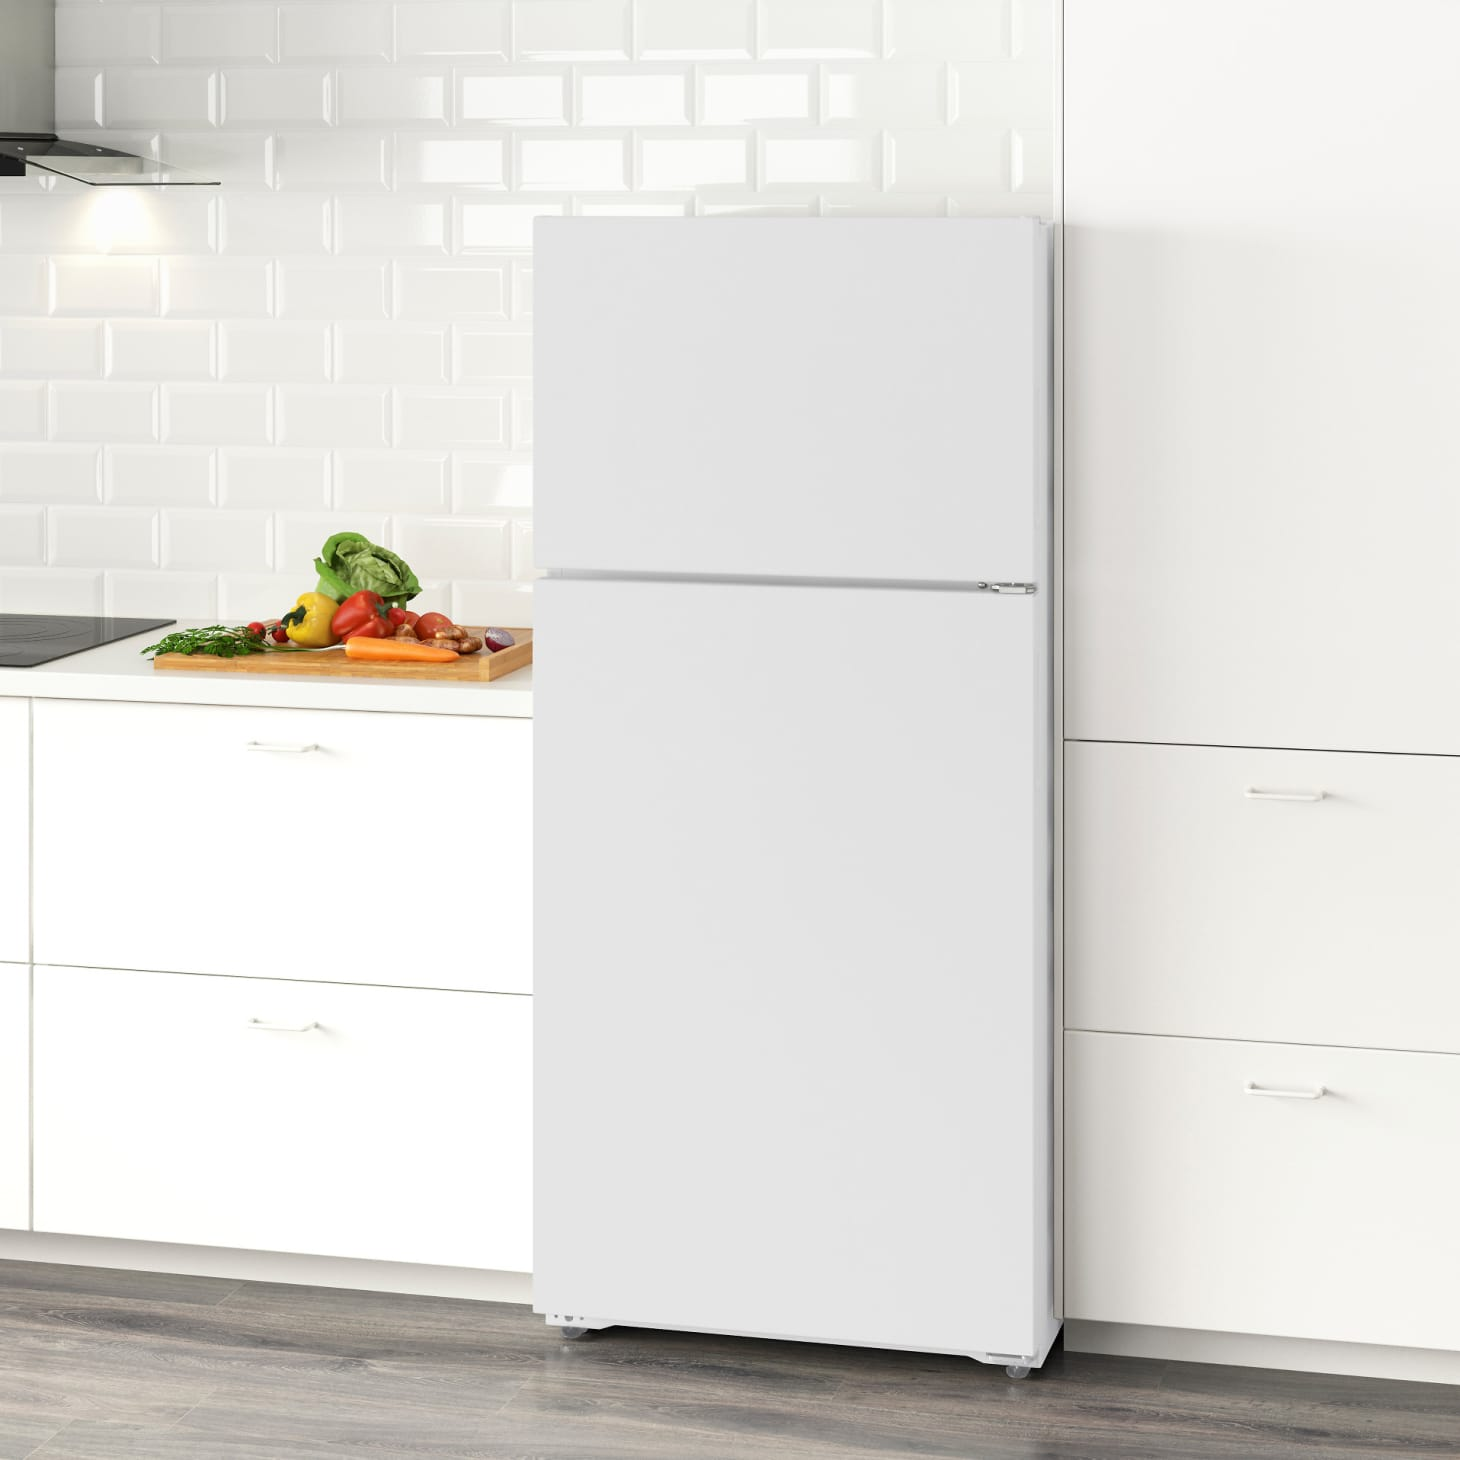 IKEA Appliances: Are Their Refrigerators A Good Deal ...